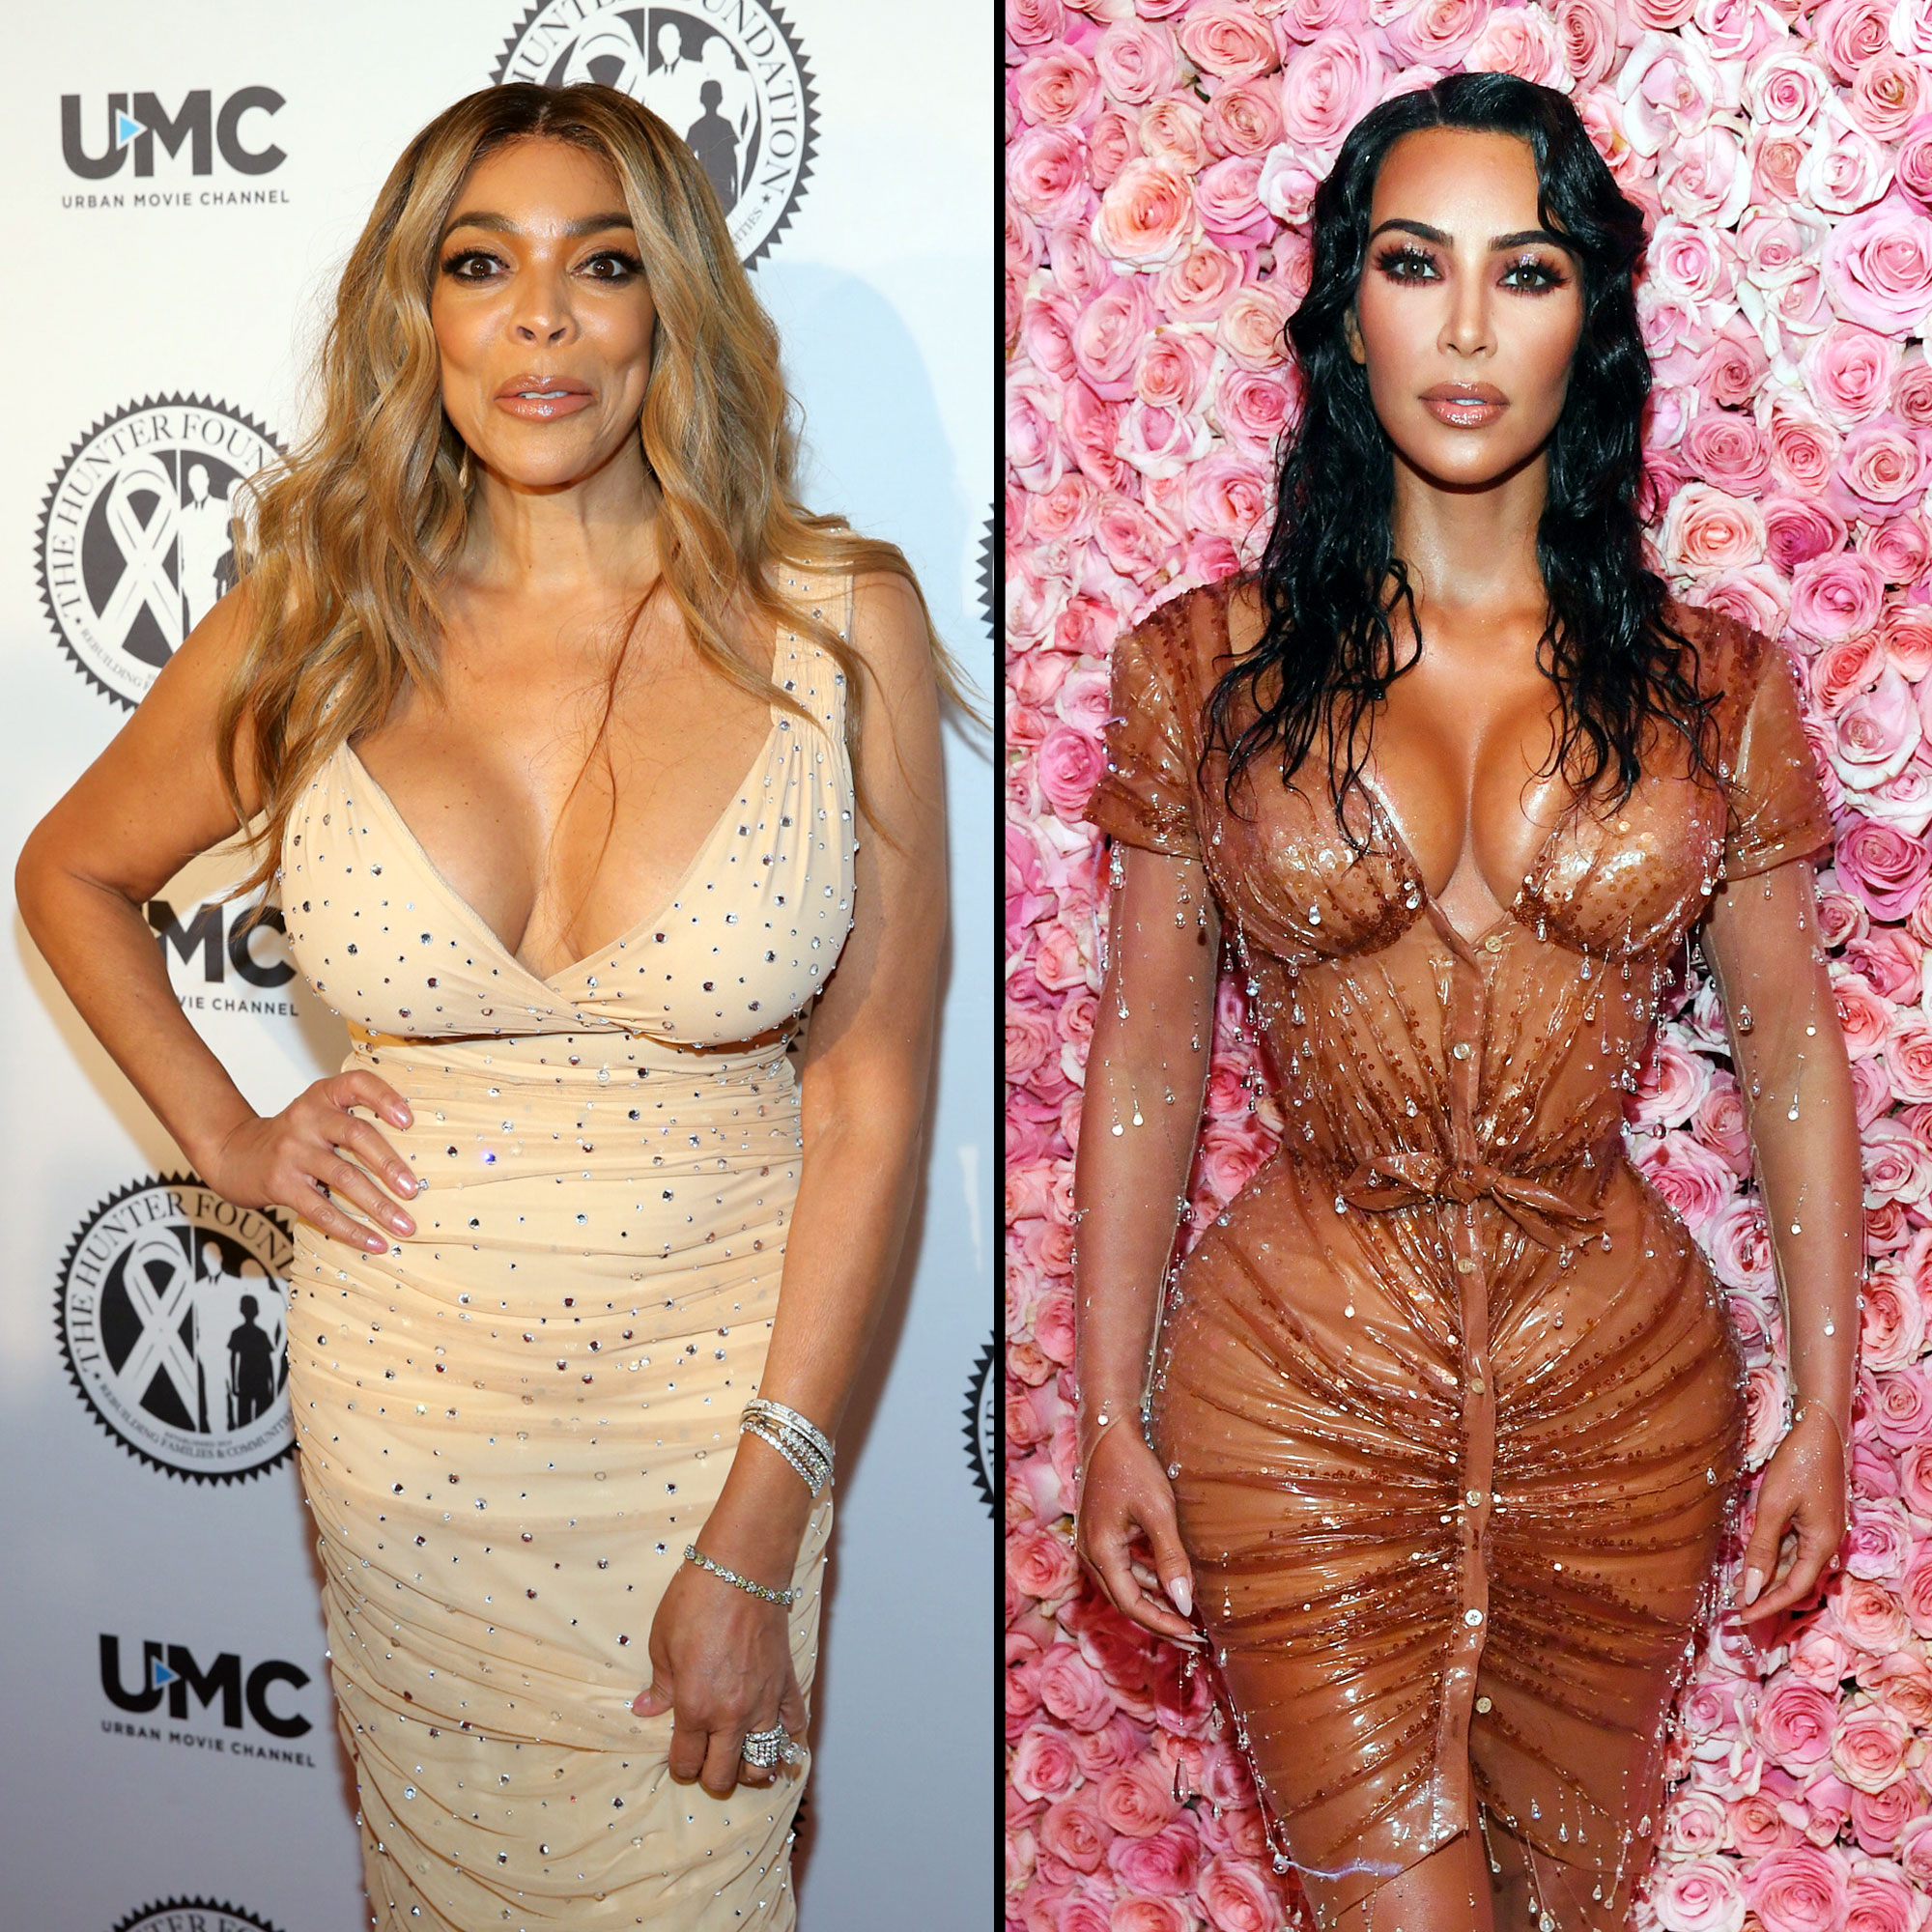 Wendy Williams Slams Kim Kardashian for Calling Out Jack in the Box: 'Who Does She Think She Is?